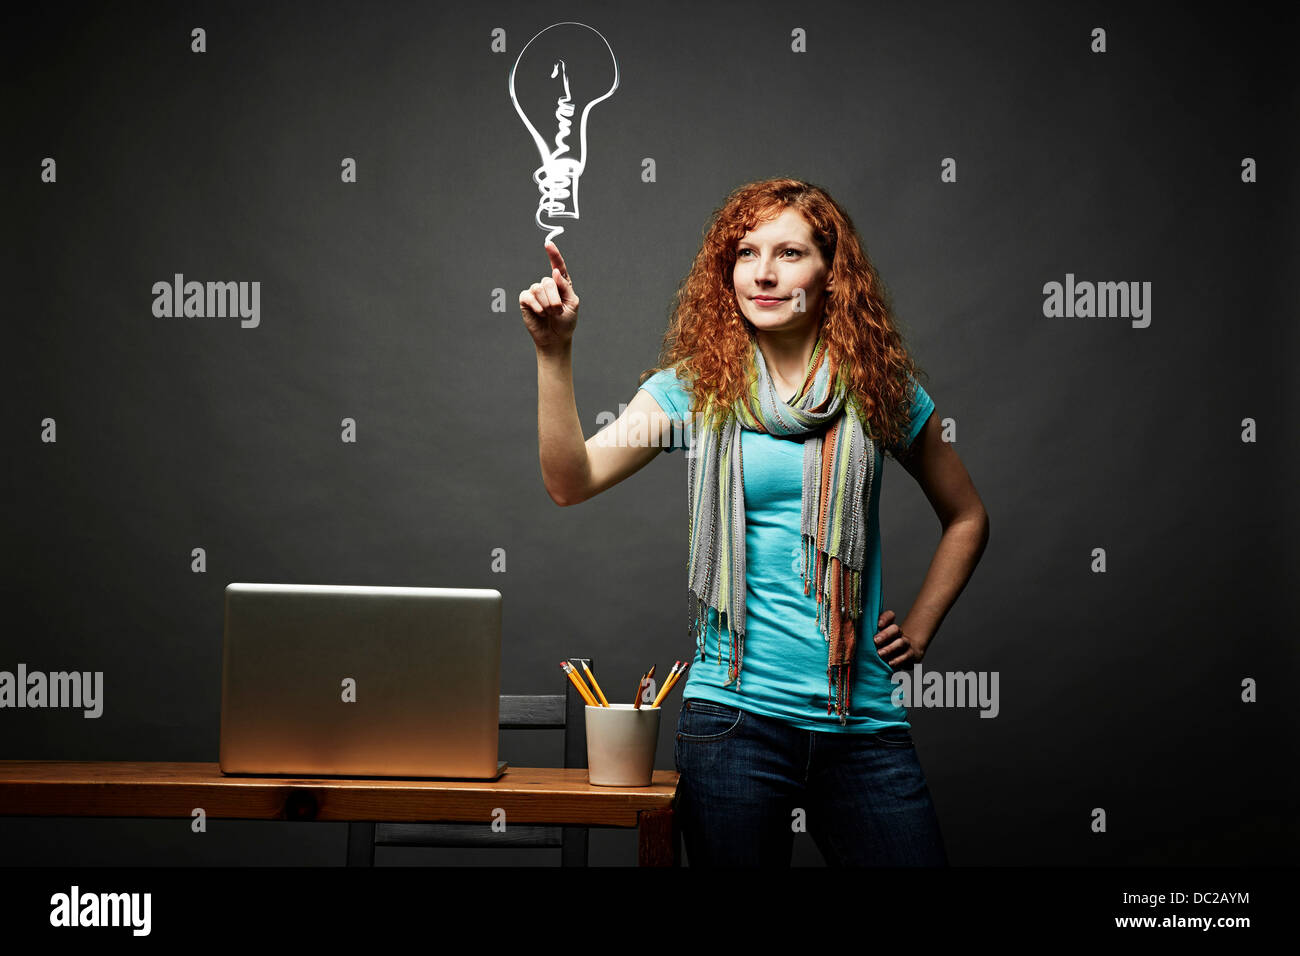 Woman drawing a light bulb - Stock Image